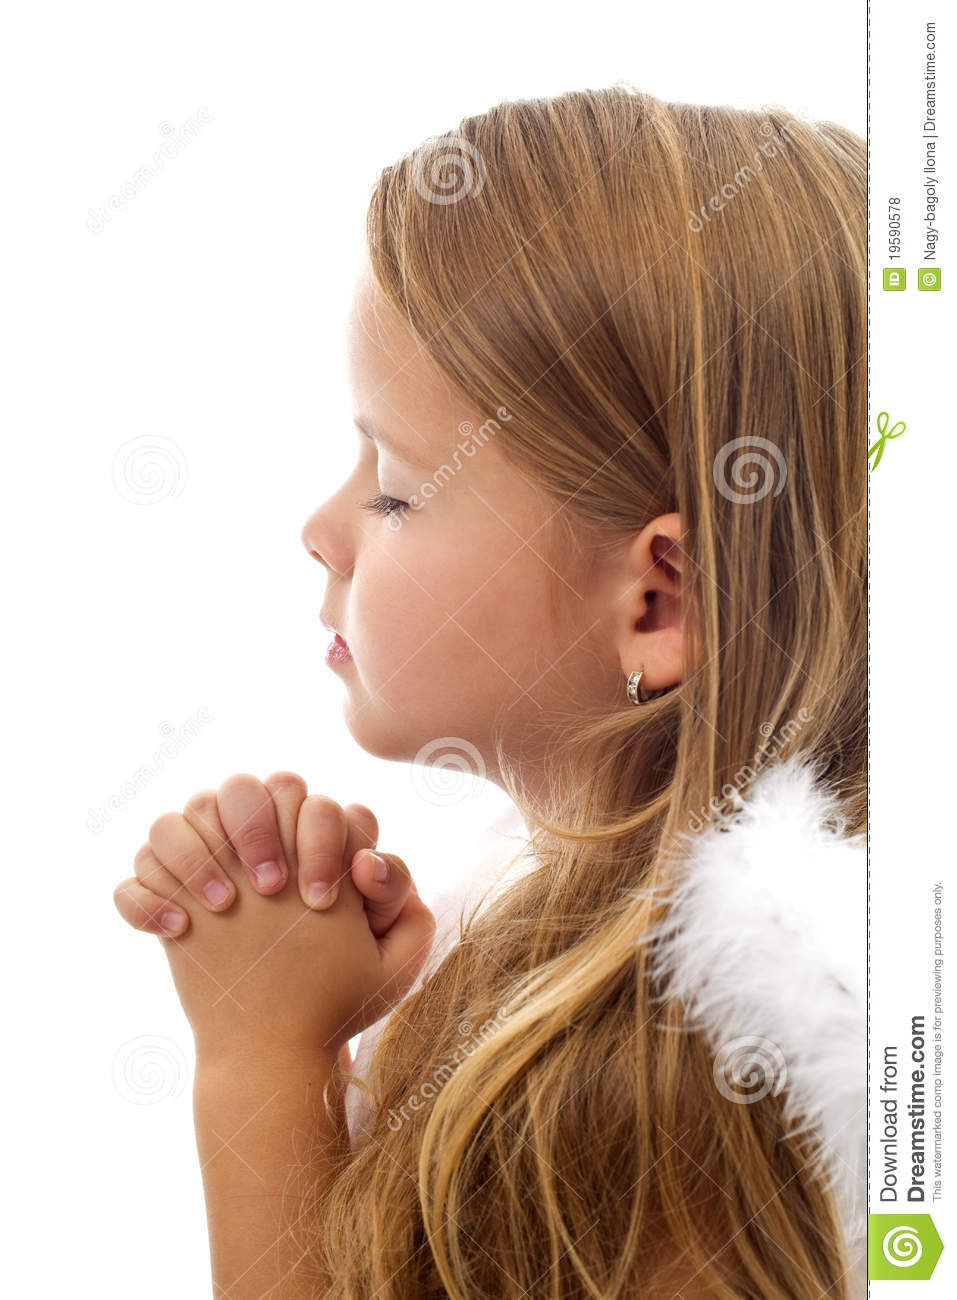 praying clipart pictures free